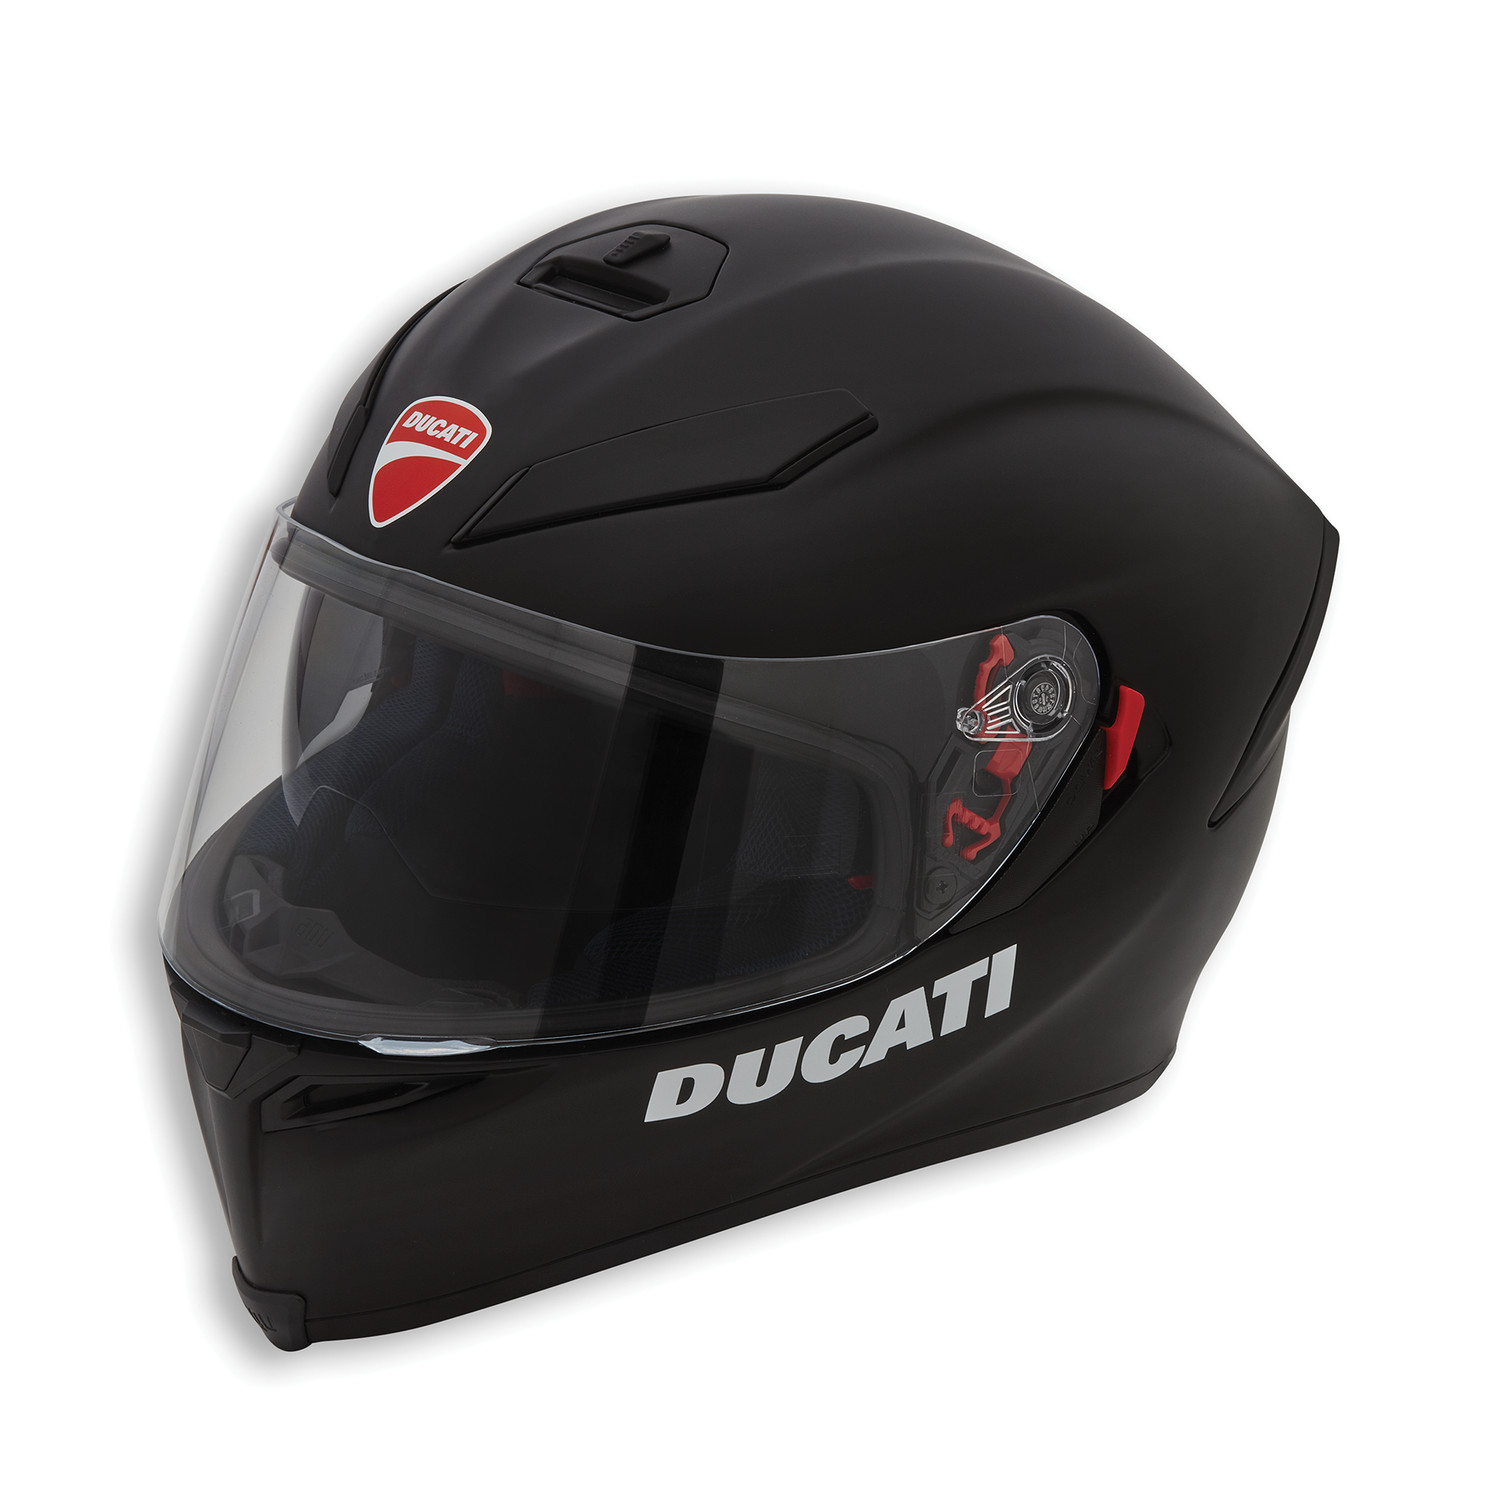 Dark Rider V2 - Full-face helmet